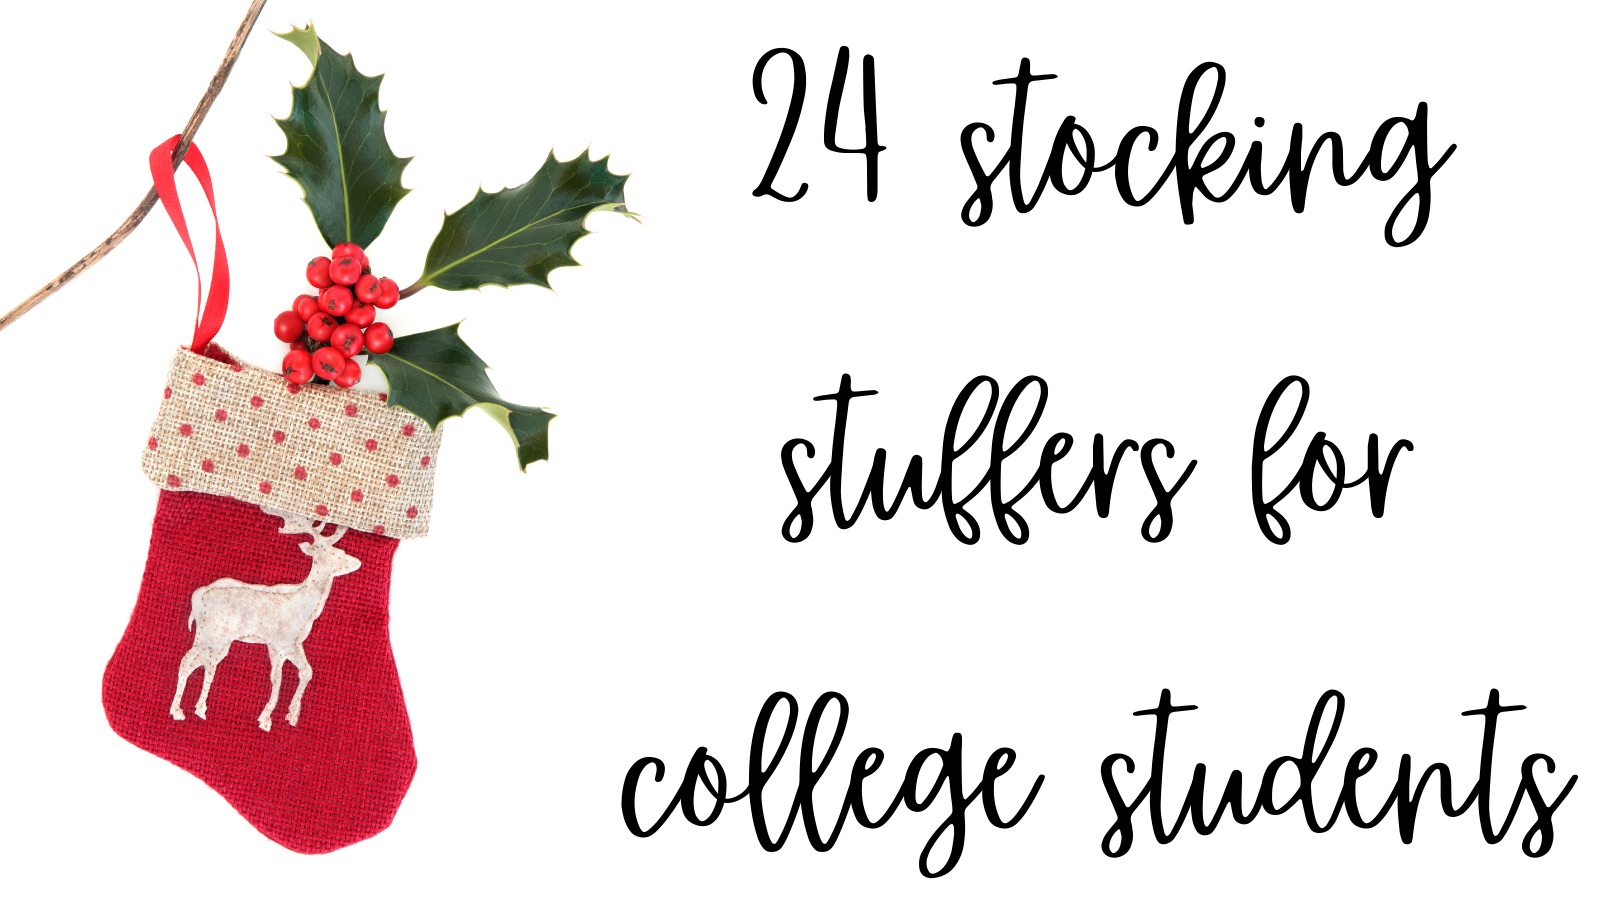 24 Stocking Stuffers For College Students!